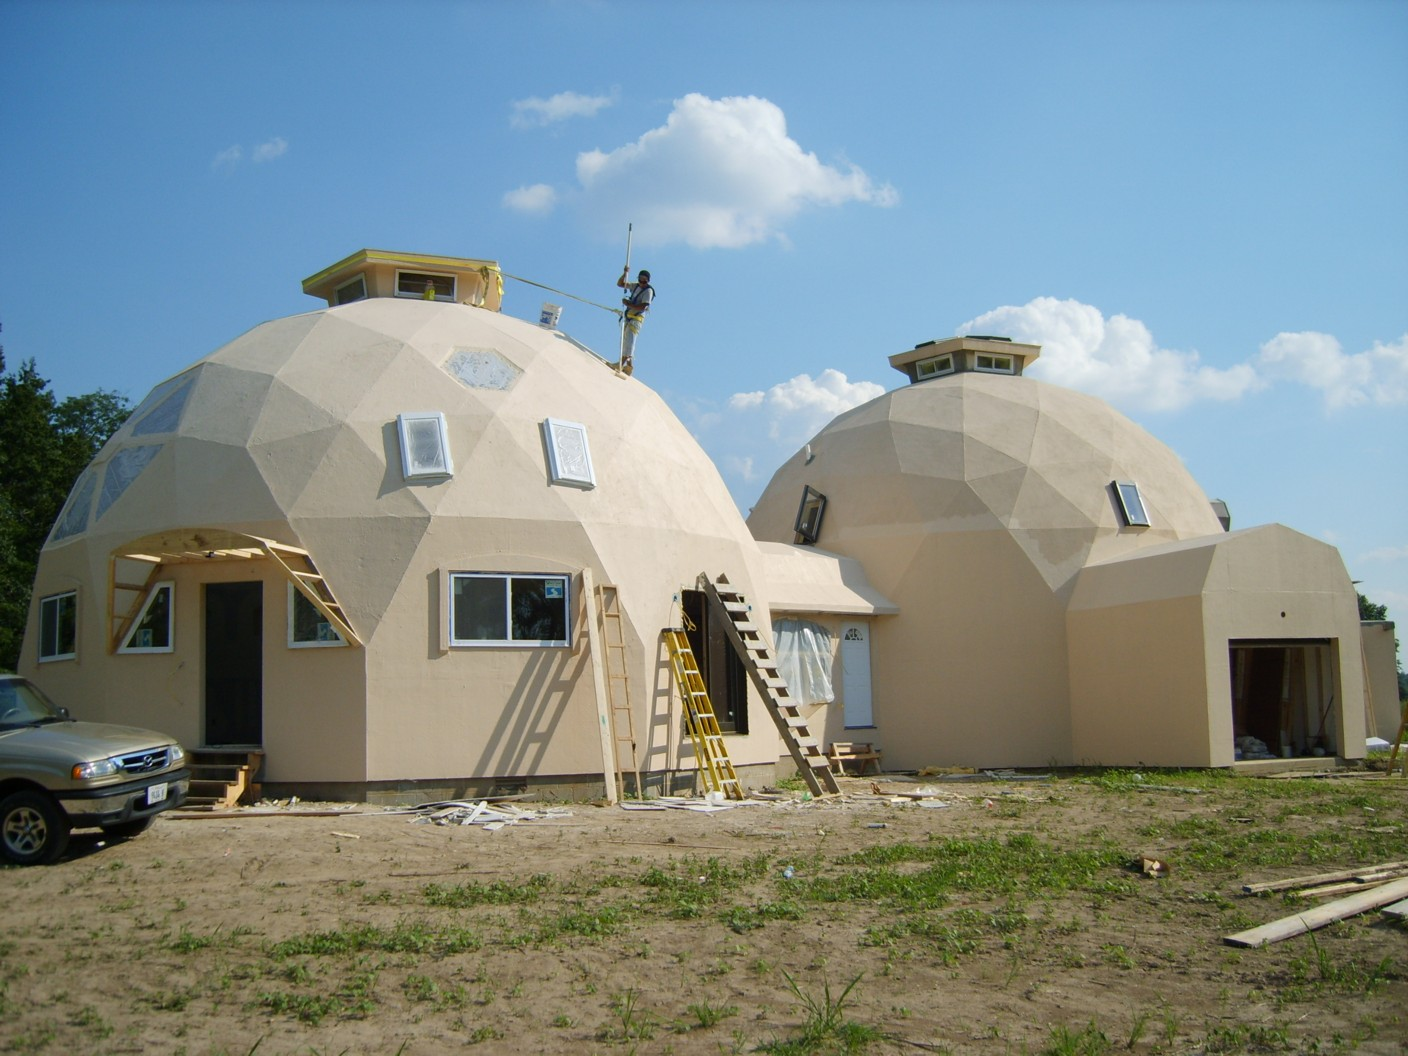 Geodesic Dome Home Domes Under Construction Photos Built With Econodome Kits